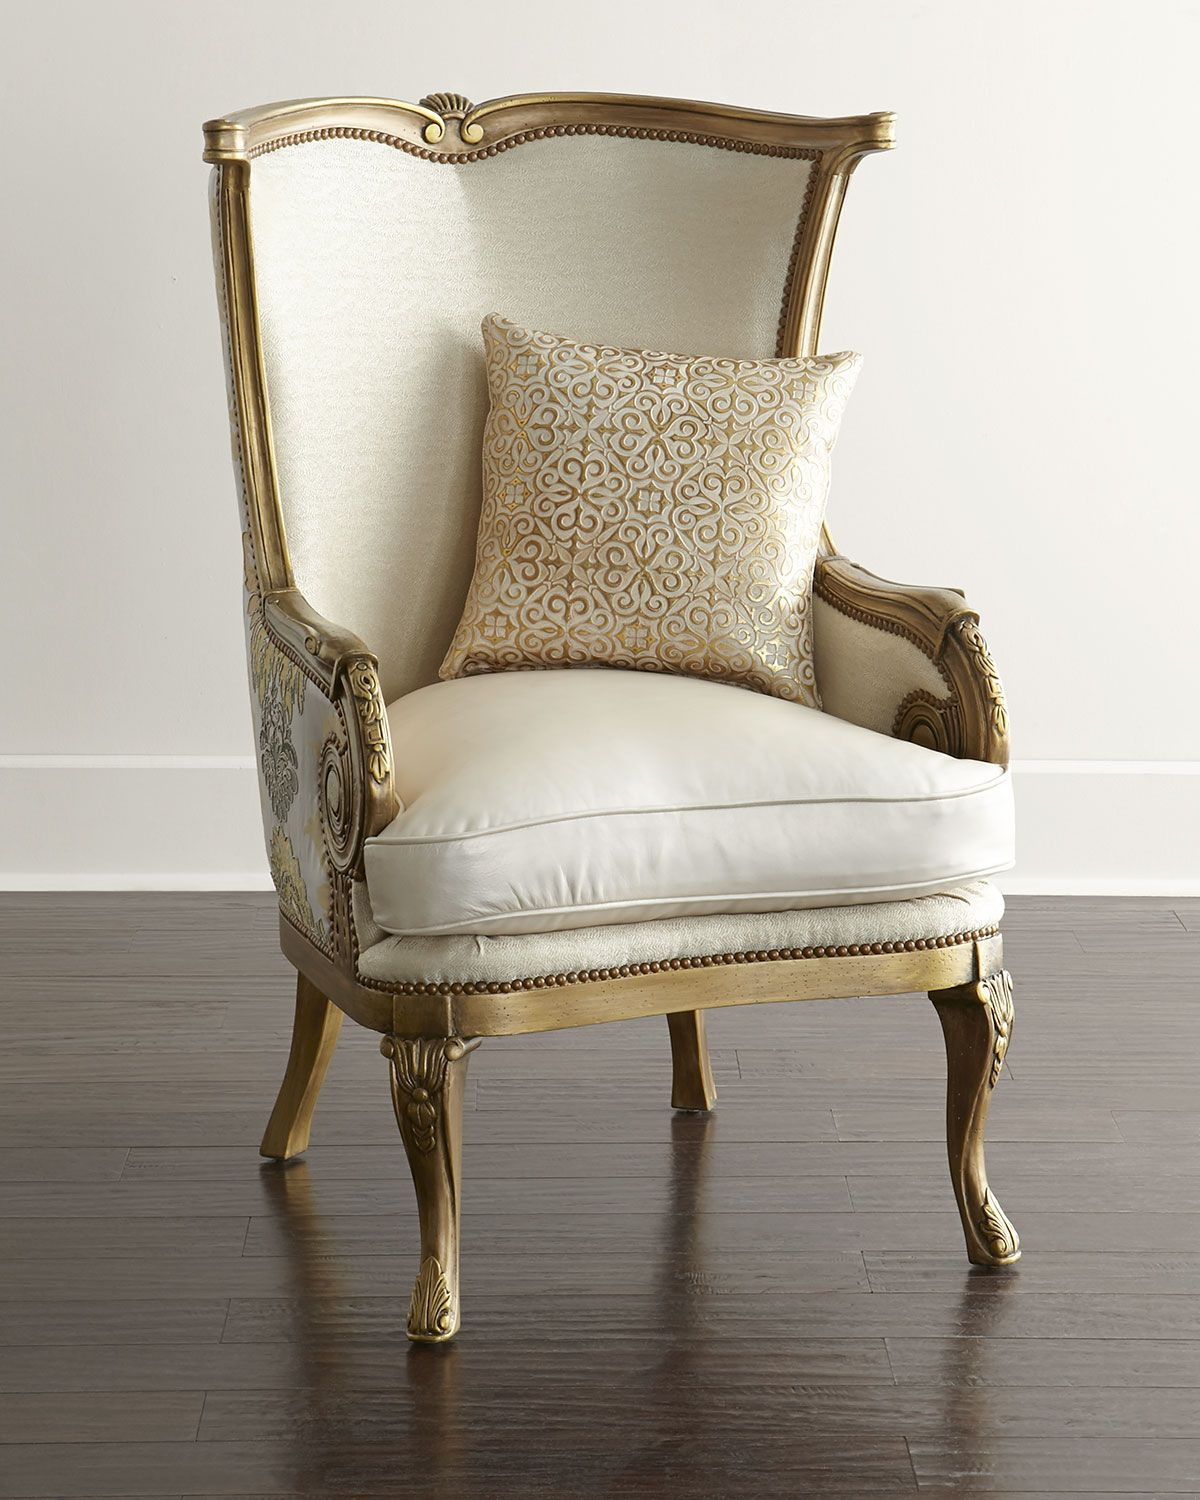 Massoud Golden Damask Chair  Upholstered chairs, Chair and